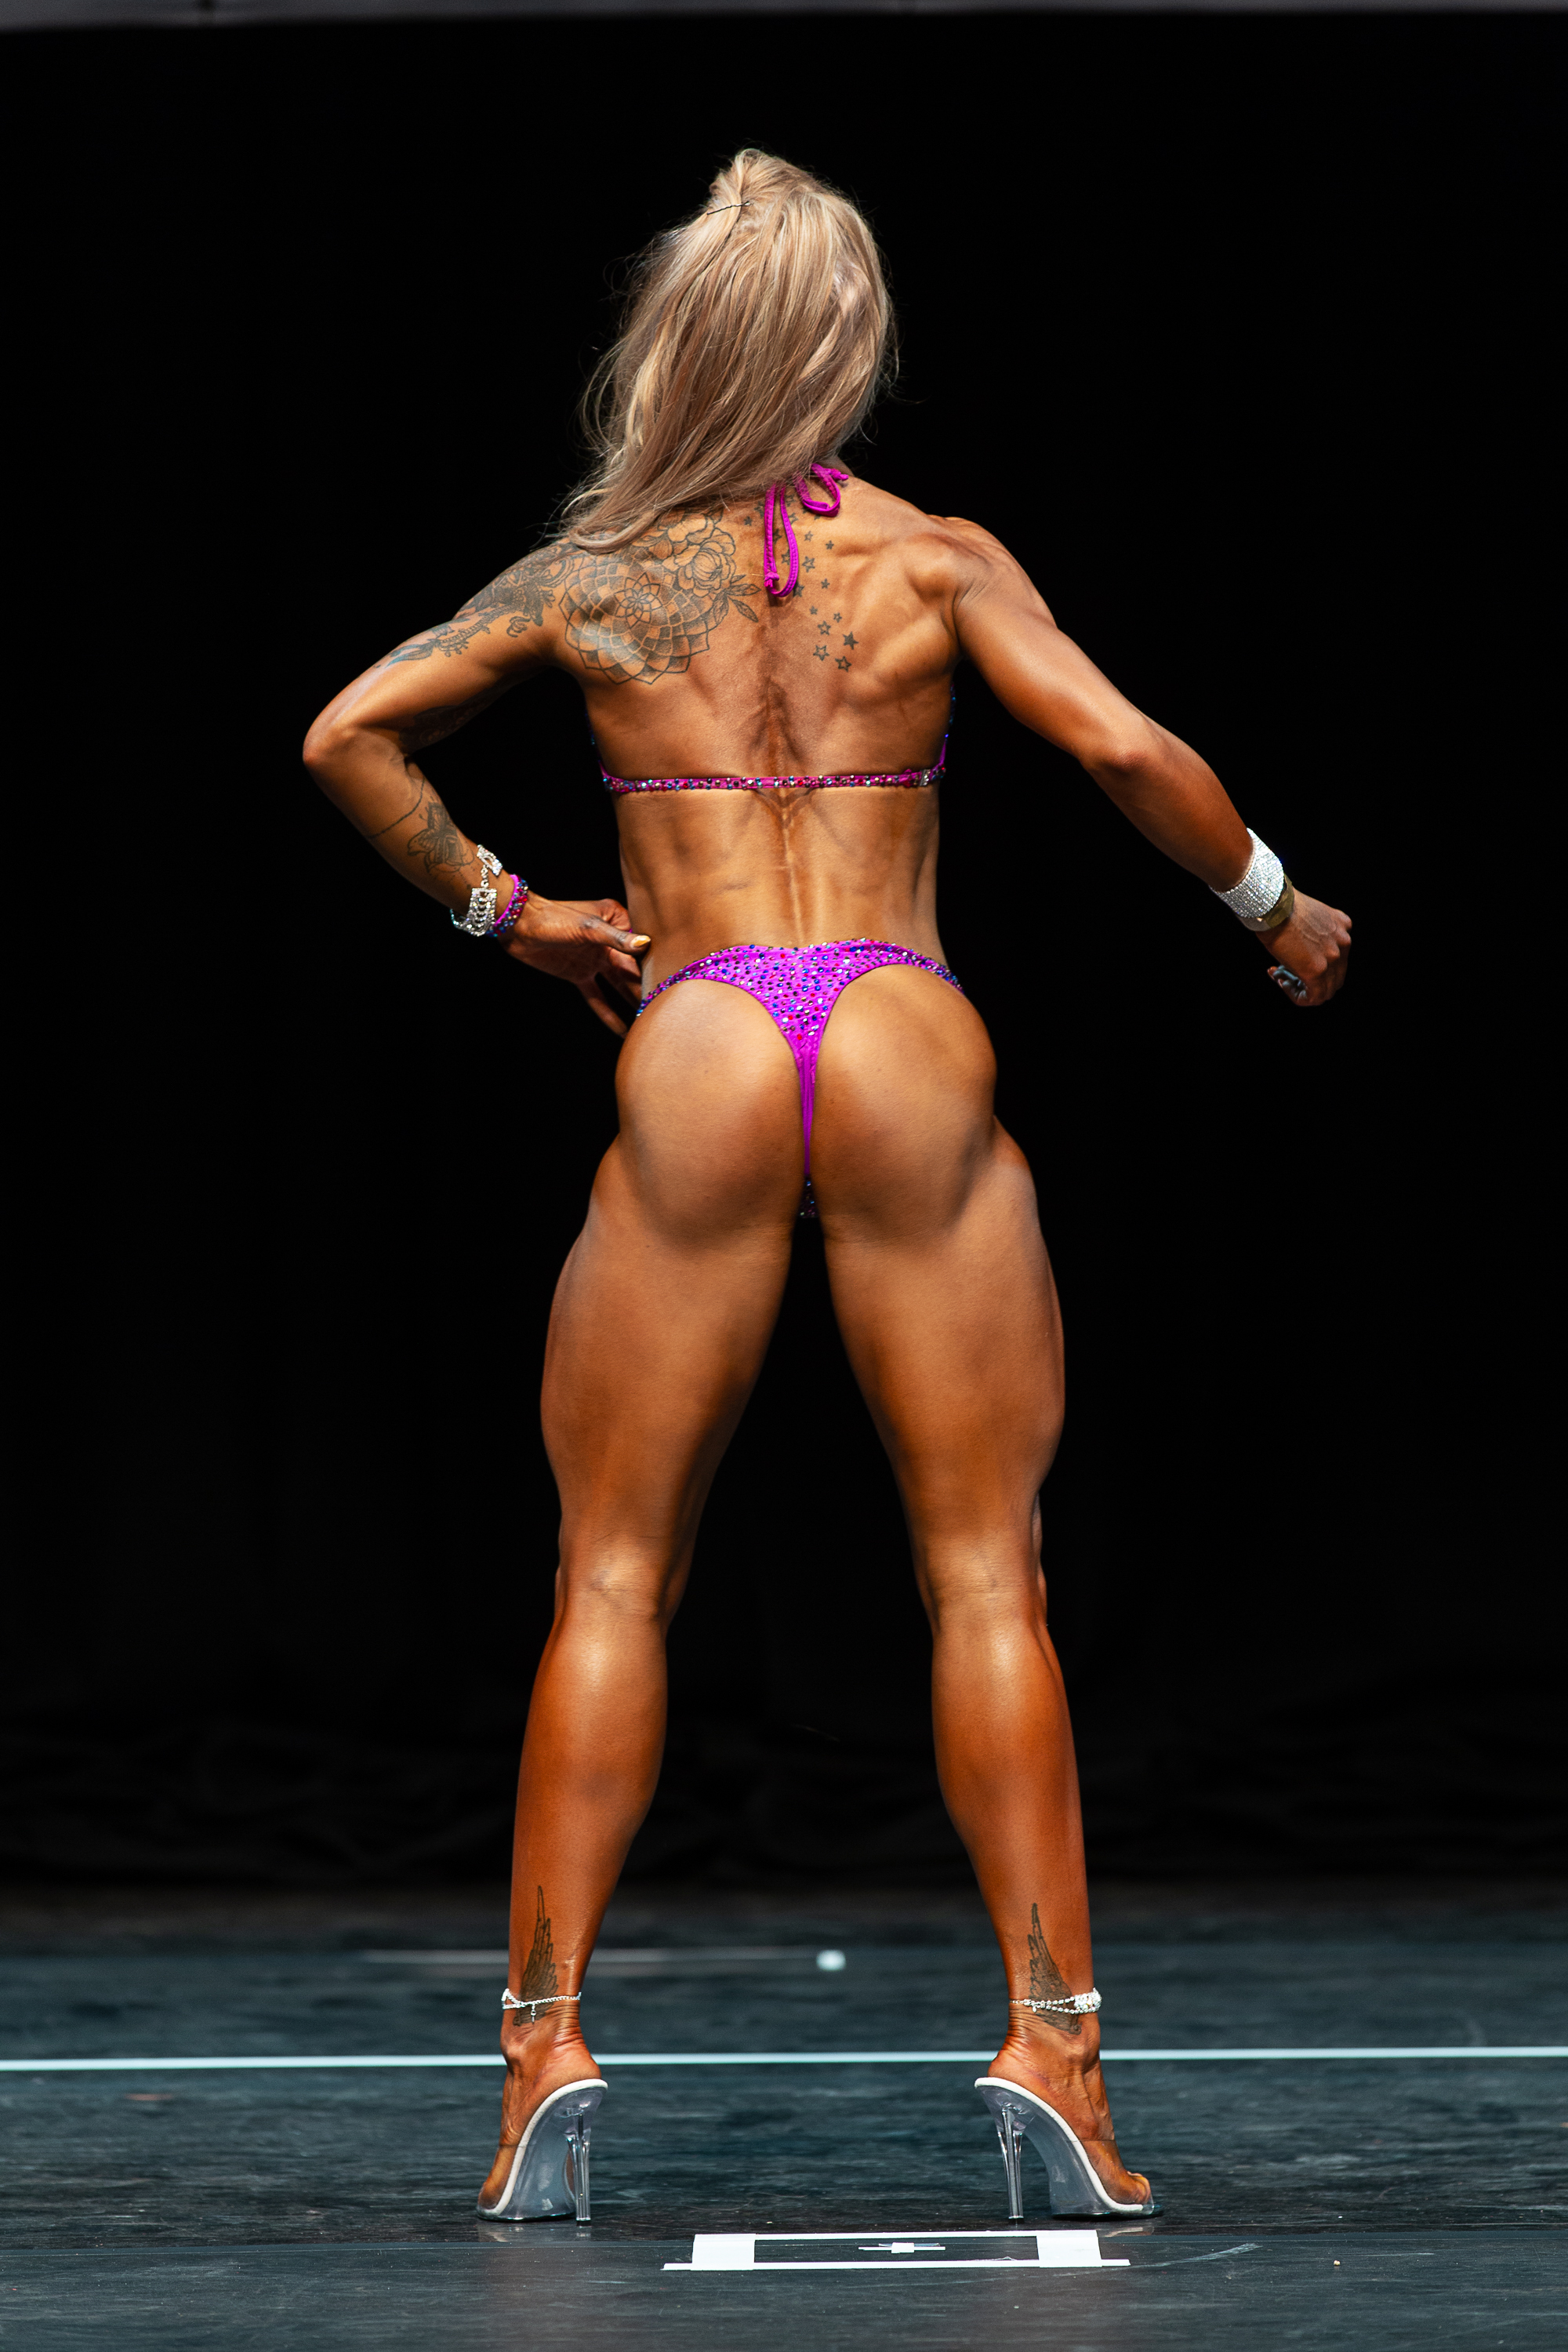 Wellness competitor Angelika Prejna will be competing in only her second event. PHOTO: Kevin Horton